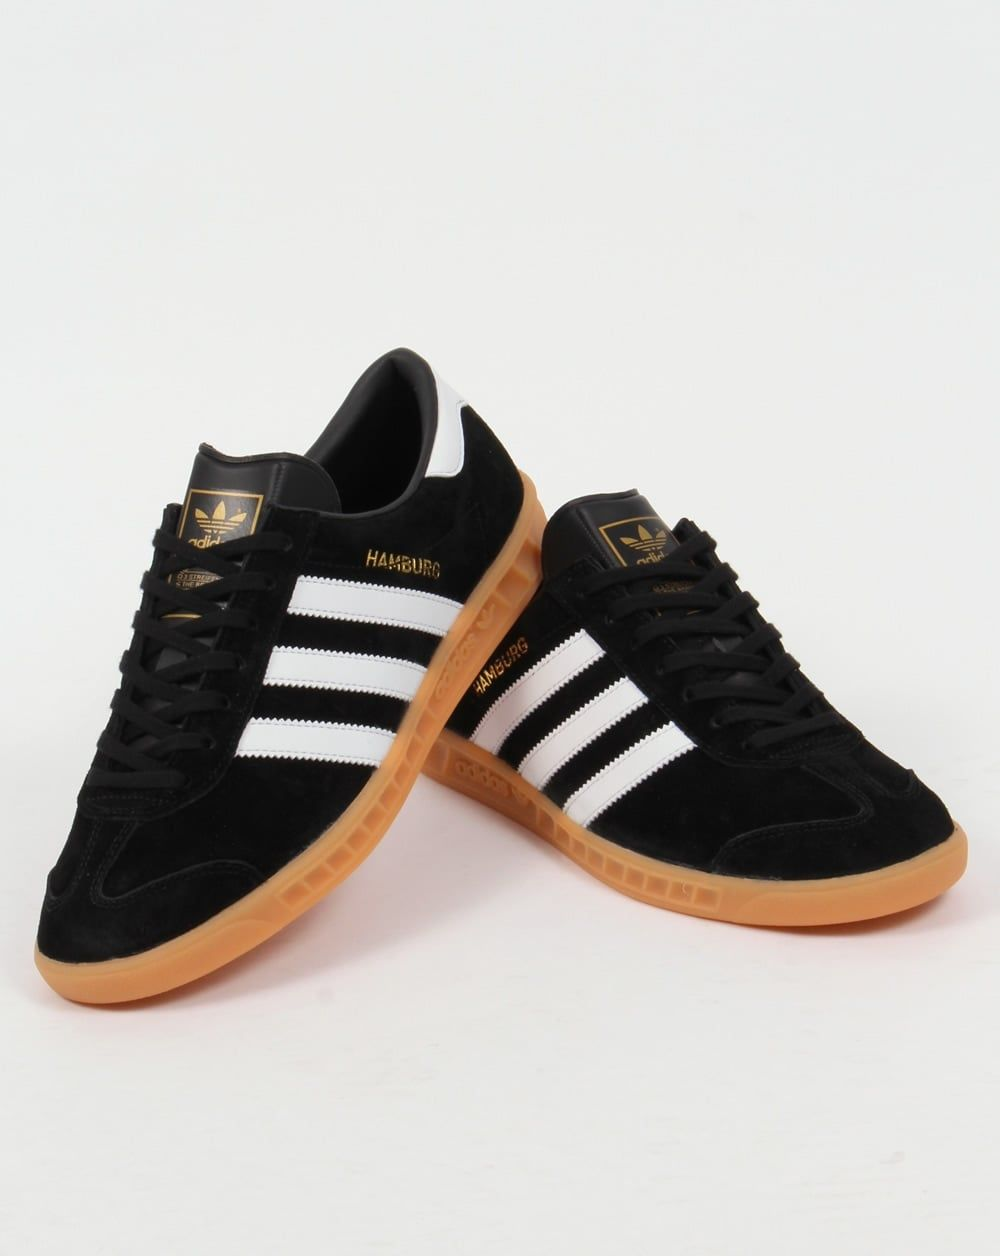 trono aumento Convertir  adidas-hamburg-trainers-black-white-gum-p5404-46884_image.jpg (1000×1256) |  Adidas outfit shoes, Adidas shoes outlet, Running shoes for men